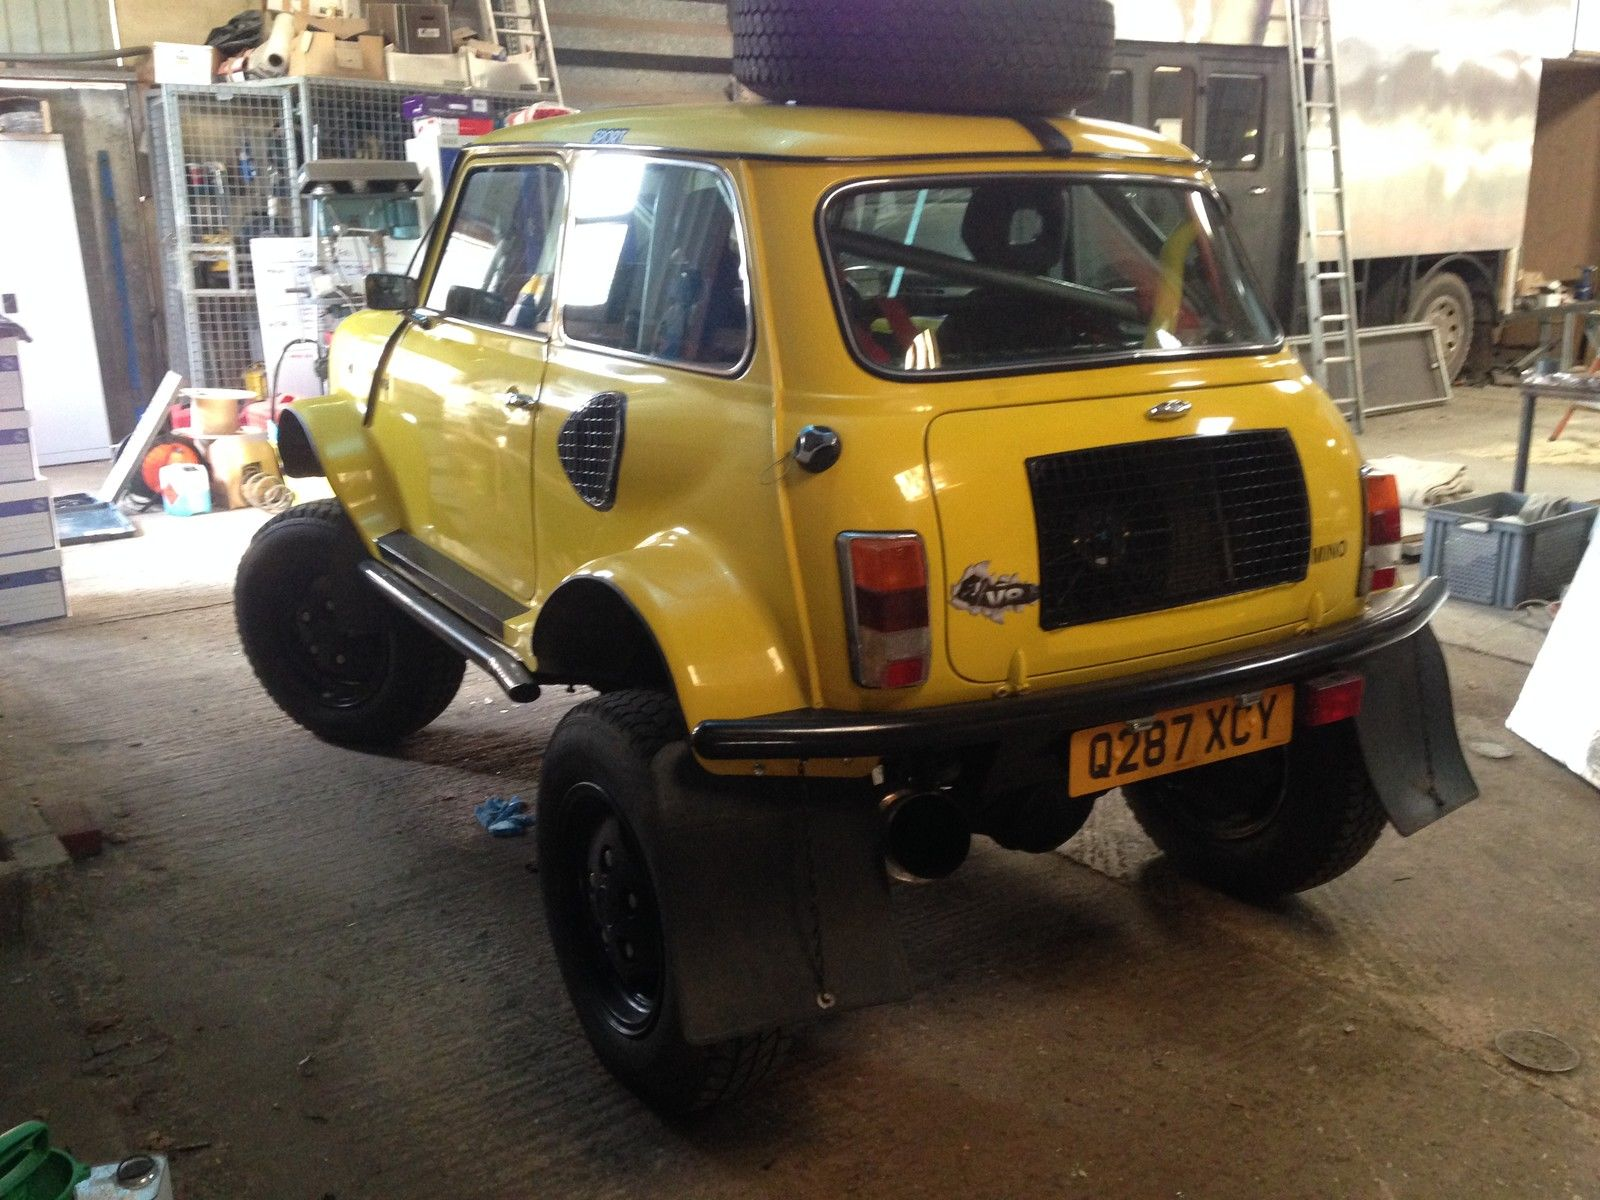 Mini Body With Range Rover Chassis And V8 Makes For An